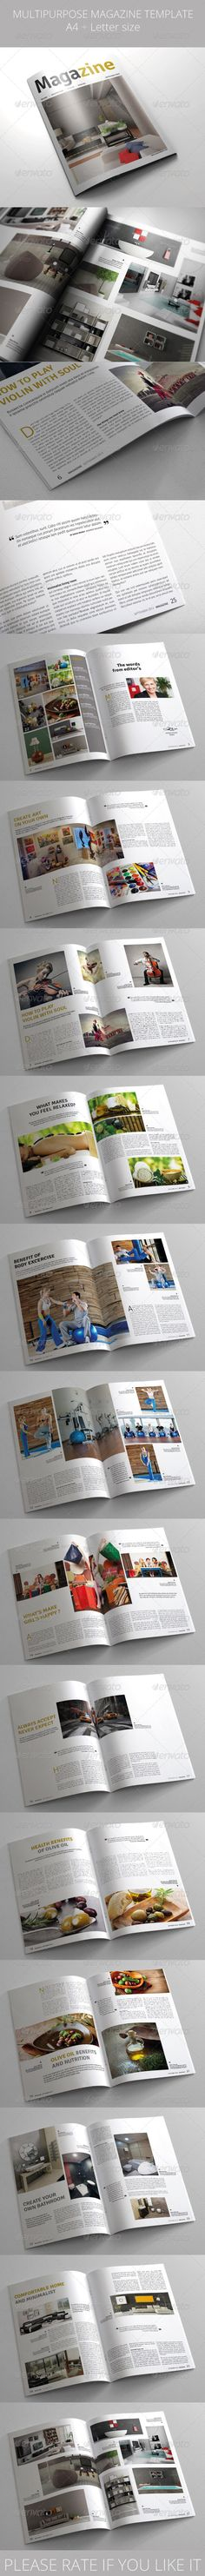 Multipurpose Magazine Template by batebata Multipurpose Magazine Template (28 pages) This is a professional and clean InDesign magazine template that can be used for any typ